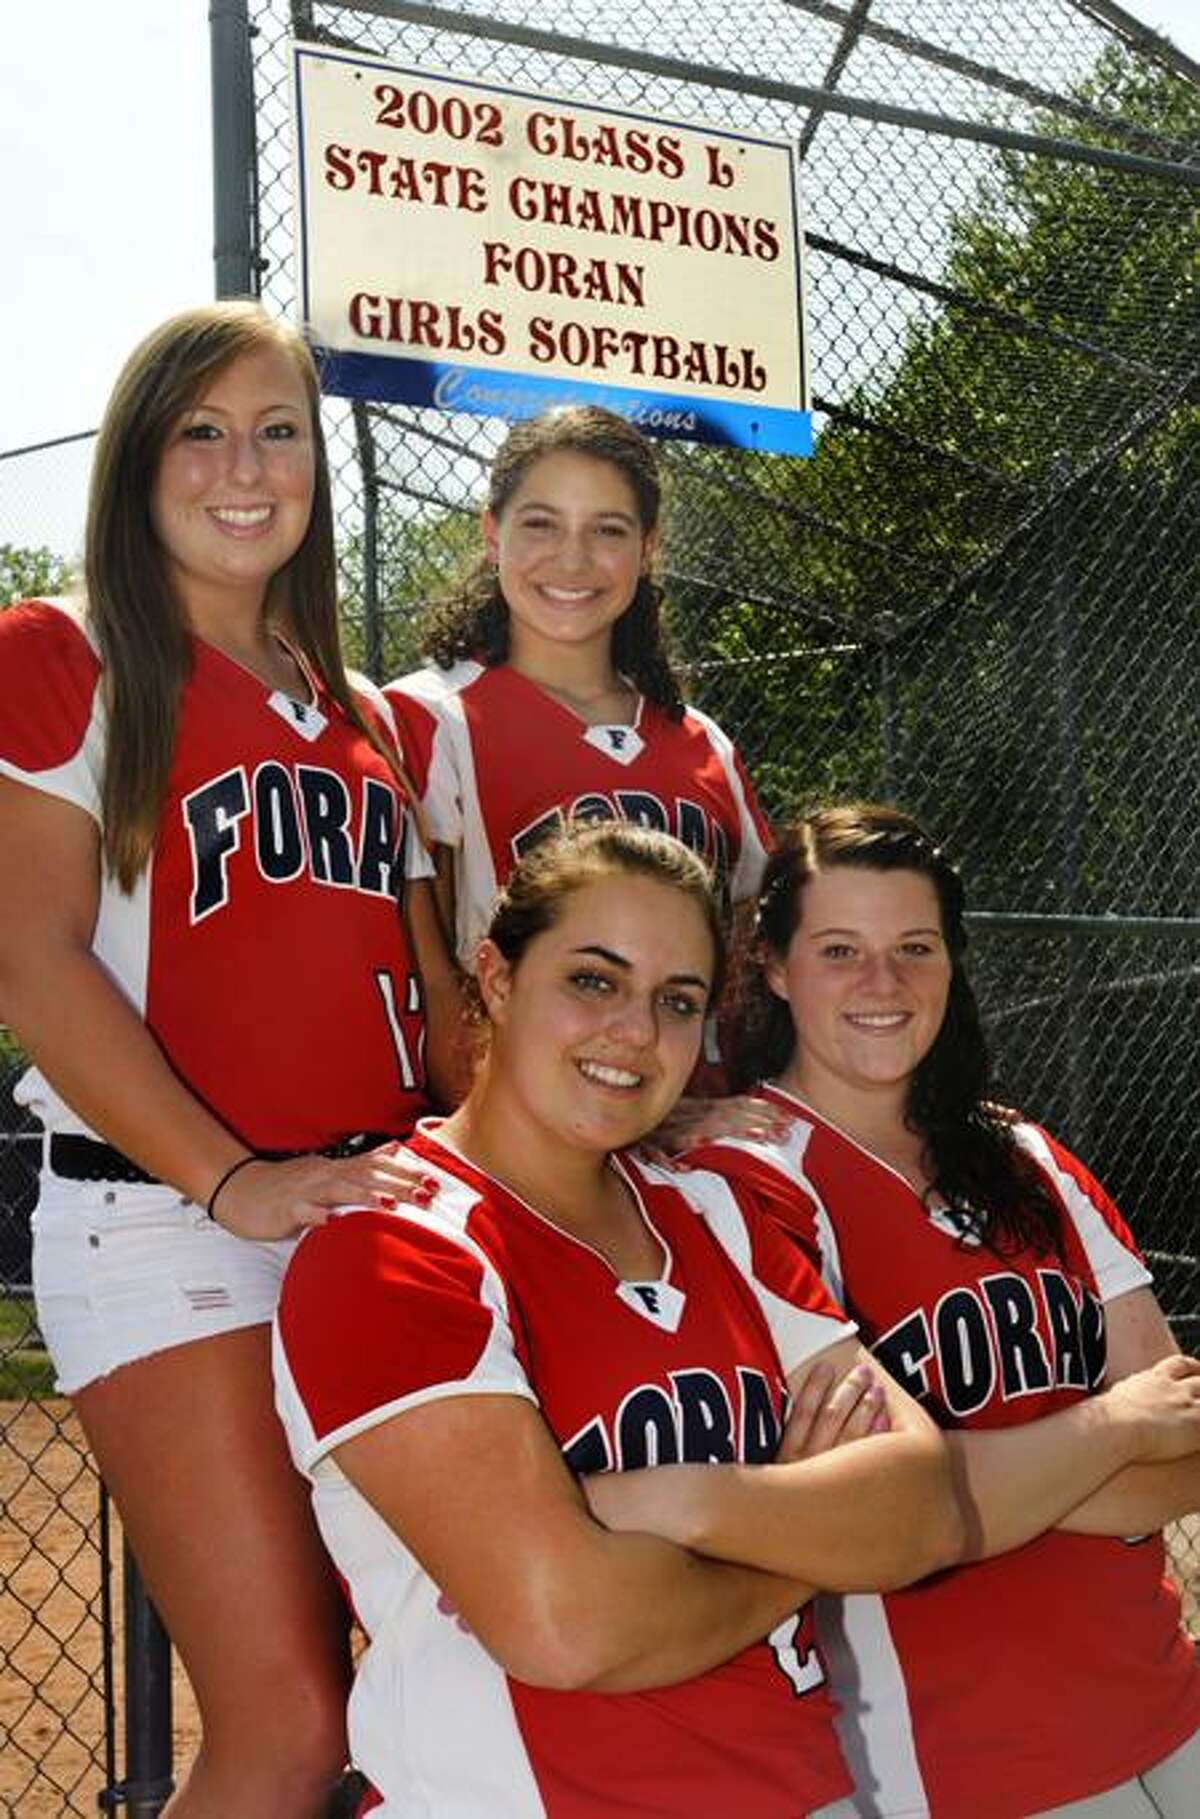 The Foran softball team faces Bacon Academy for the Class L state championship Saturday. Melanie Stengel/Register